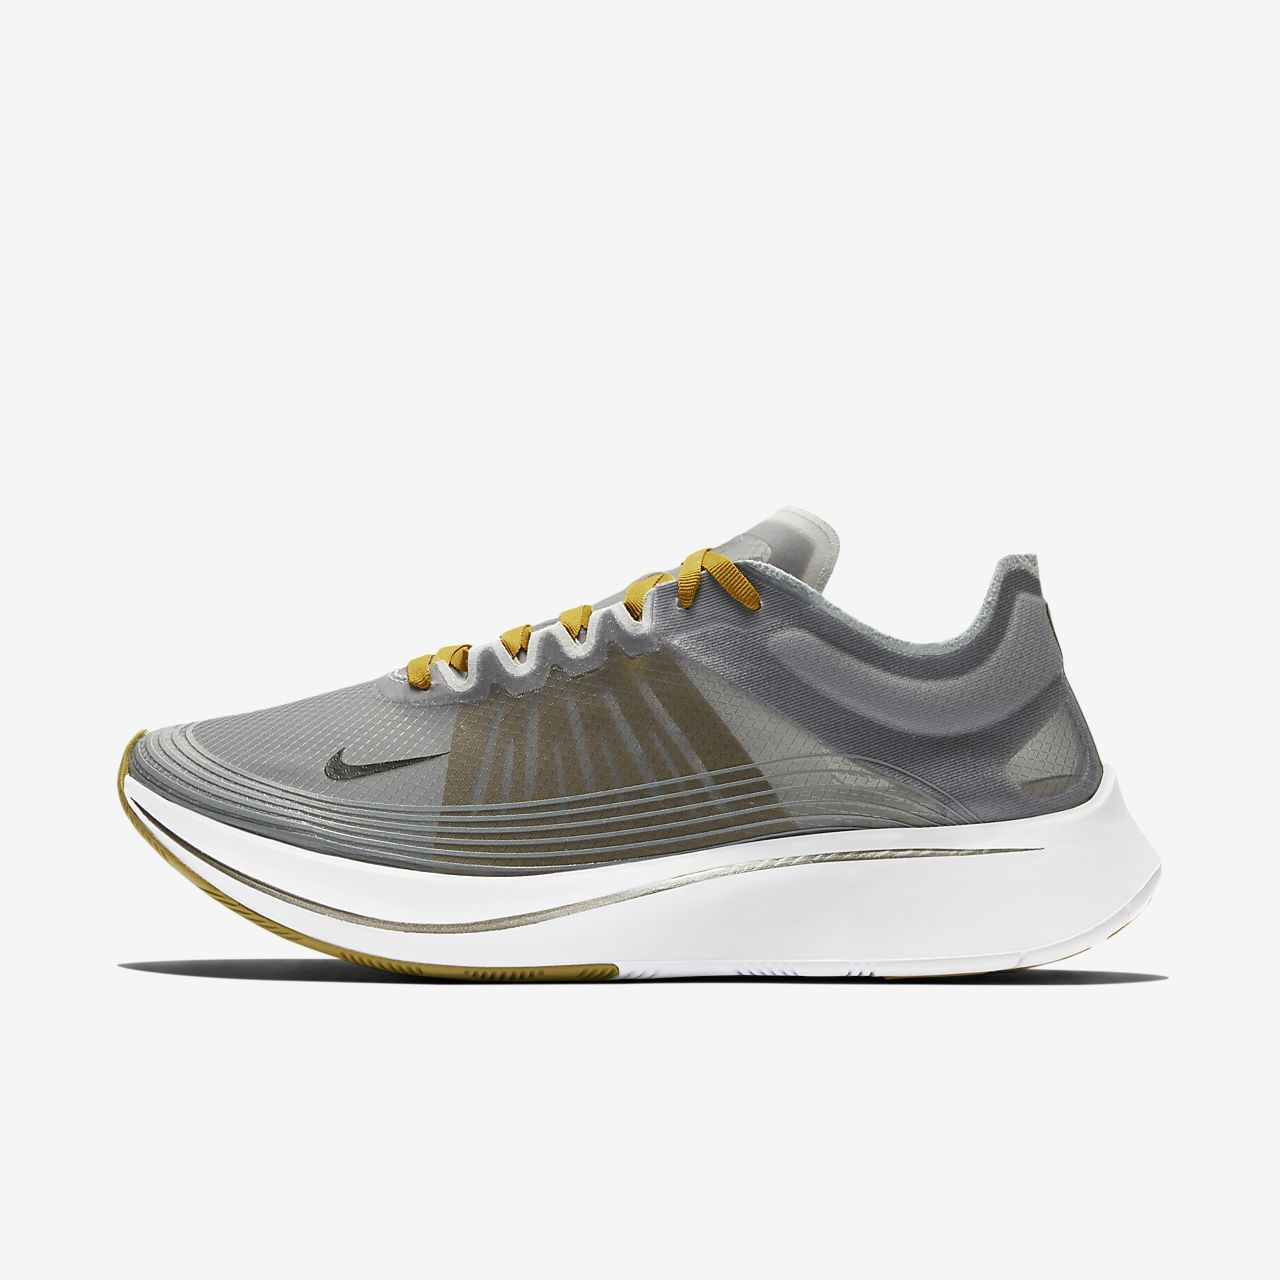 7e5837f92fb3 Nike Zoom Fly SP Running Shoe. Nike.com